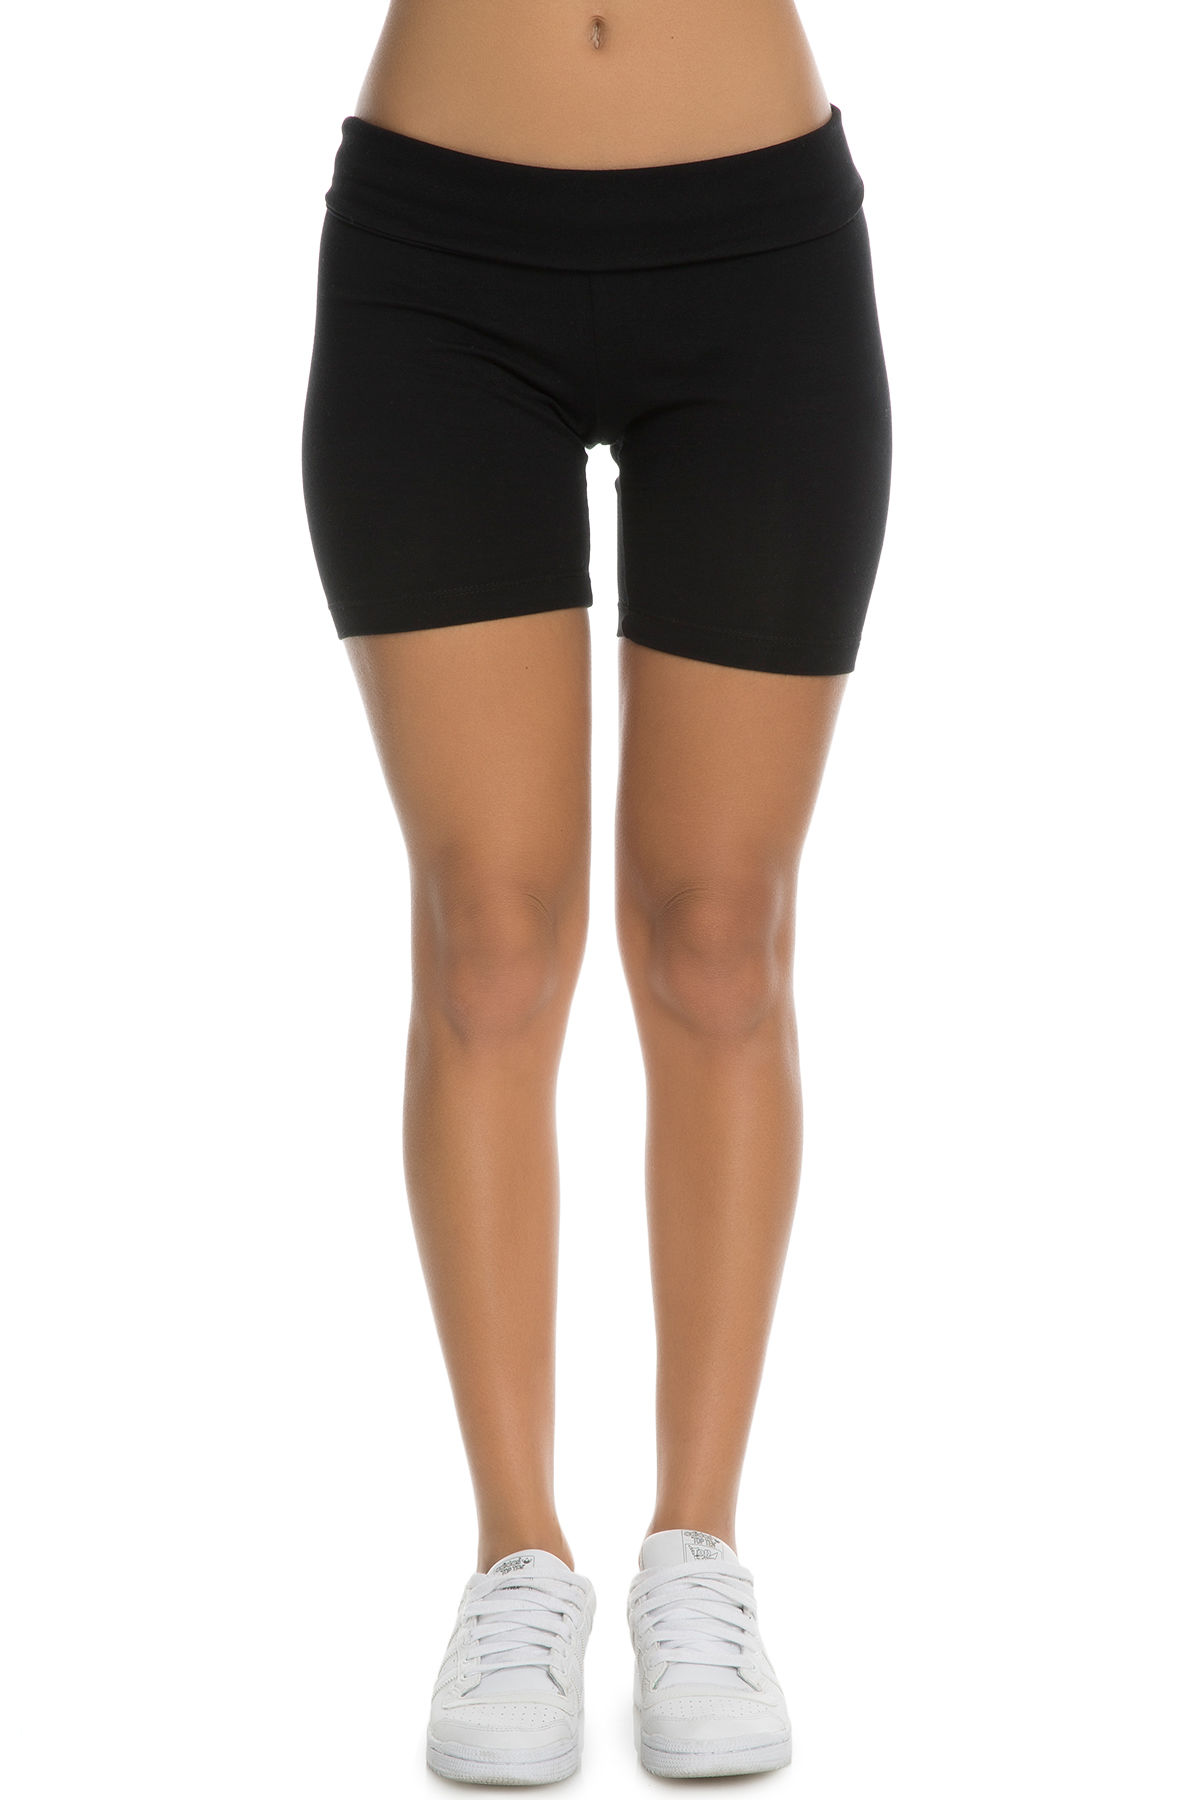 Image of The Jaclyn Women's Spandex Shorts in Black